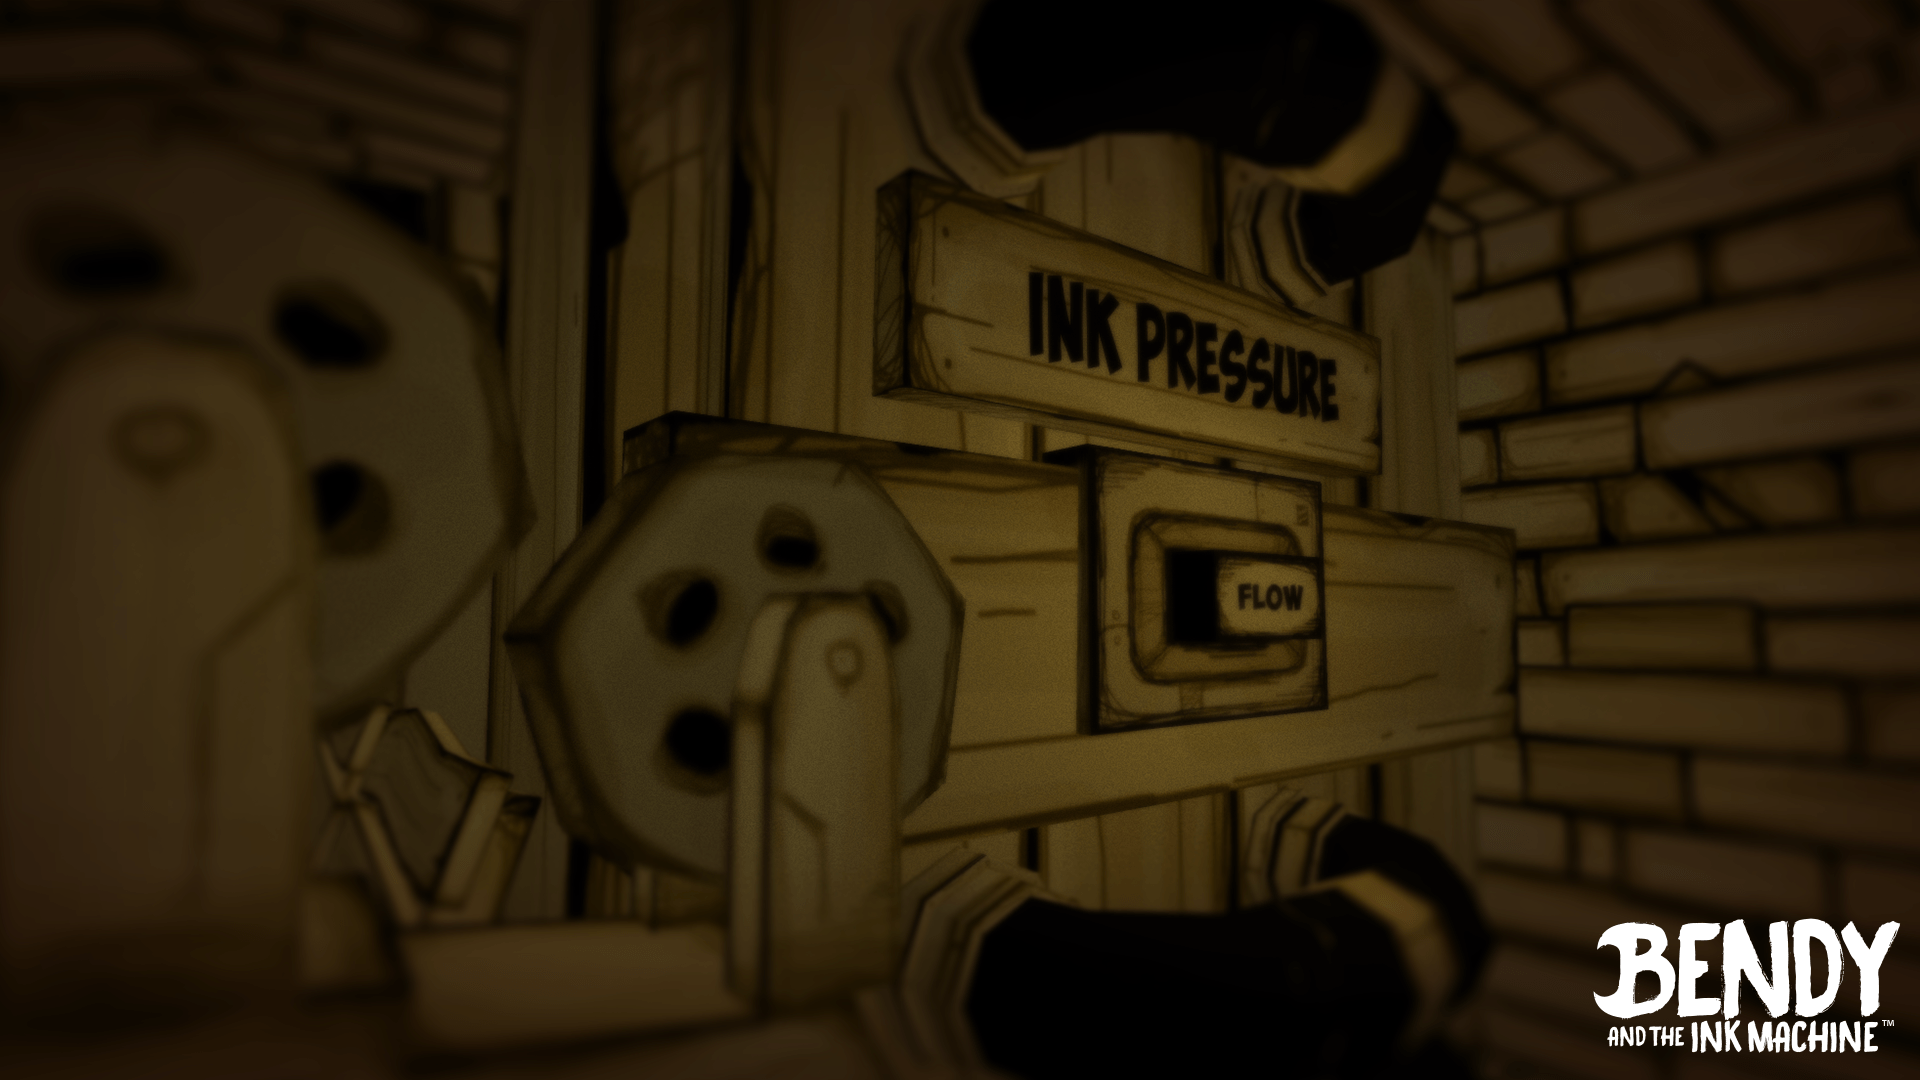 Bendy And The Ink Machine Fondo De Pantalla Hd Fondo De